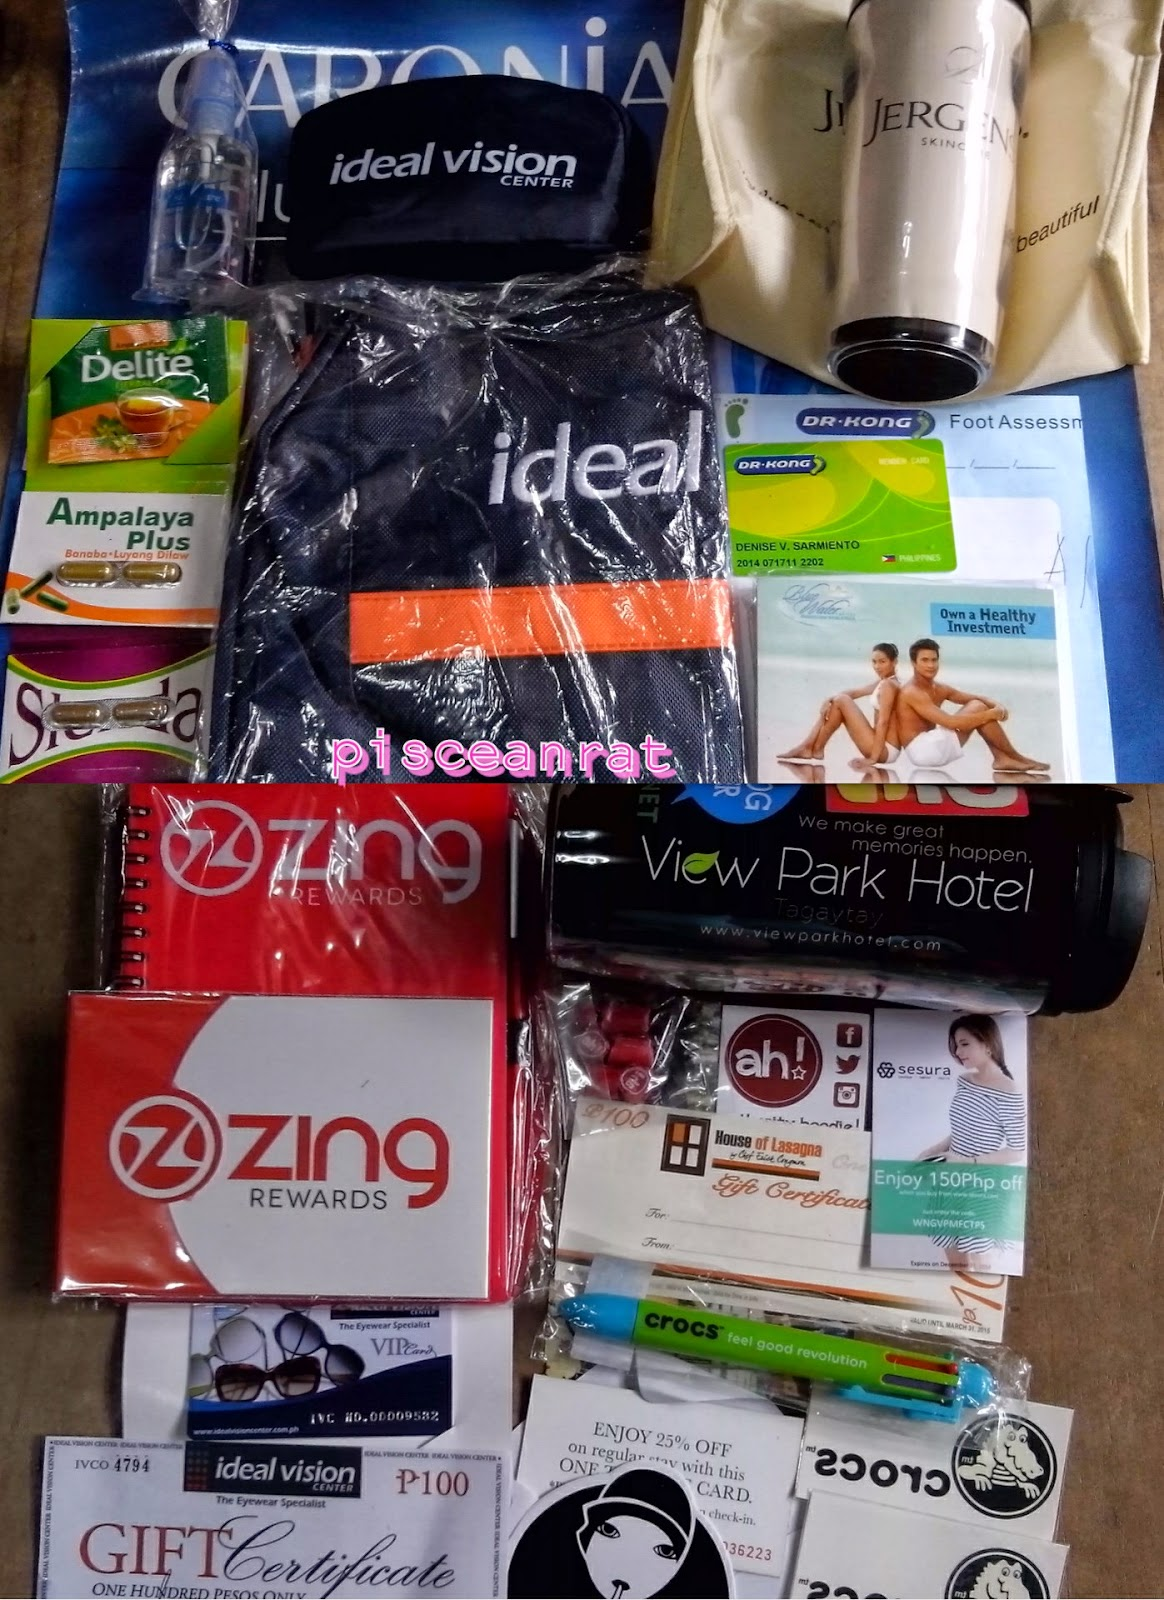 Zing Rewards, Ideal Vision, Jergens, Ampalaya Plus, Delite, Maxicare, Slenda, Dr. Kong footwear, Blue Water Day Spa, View Park Hotel Tagaytay, ah! hoodies, Victoria Court hotel, Crocs footwear,